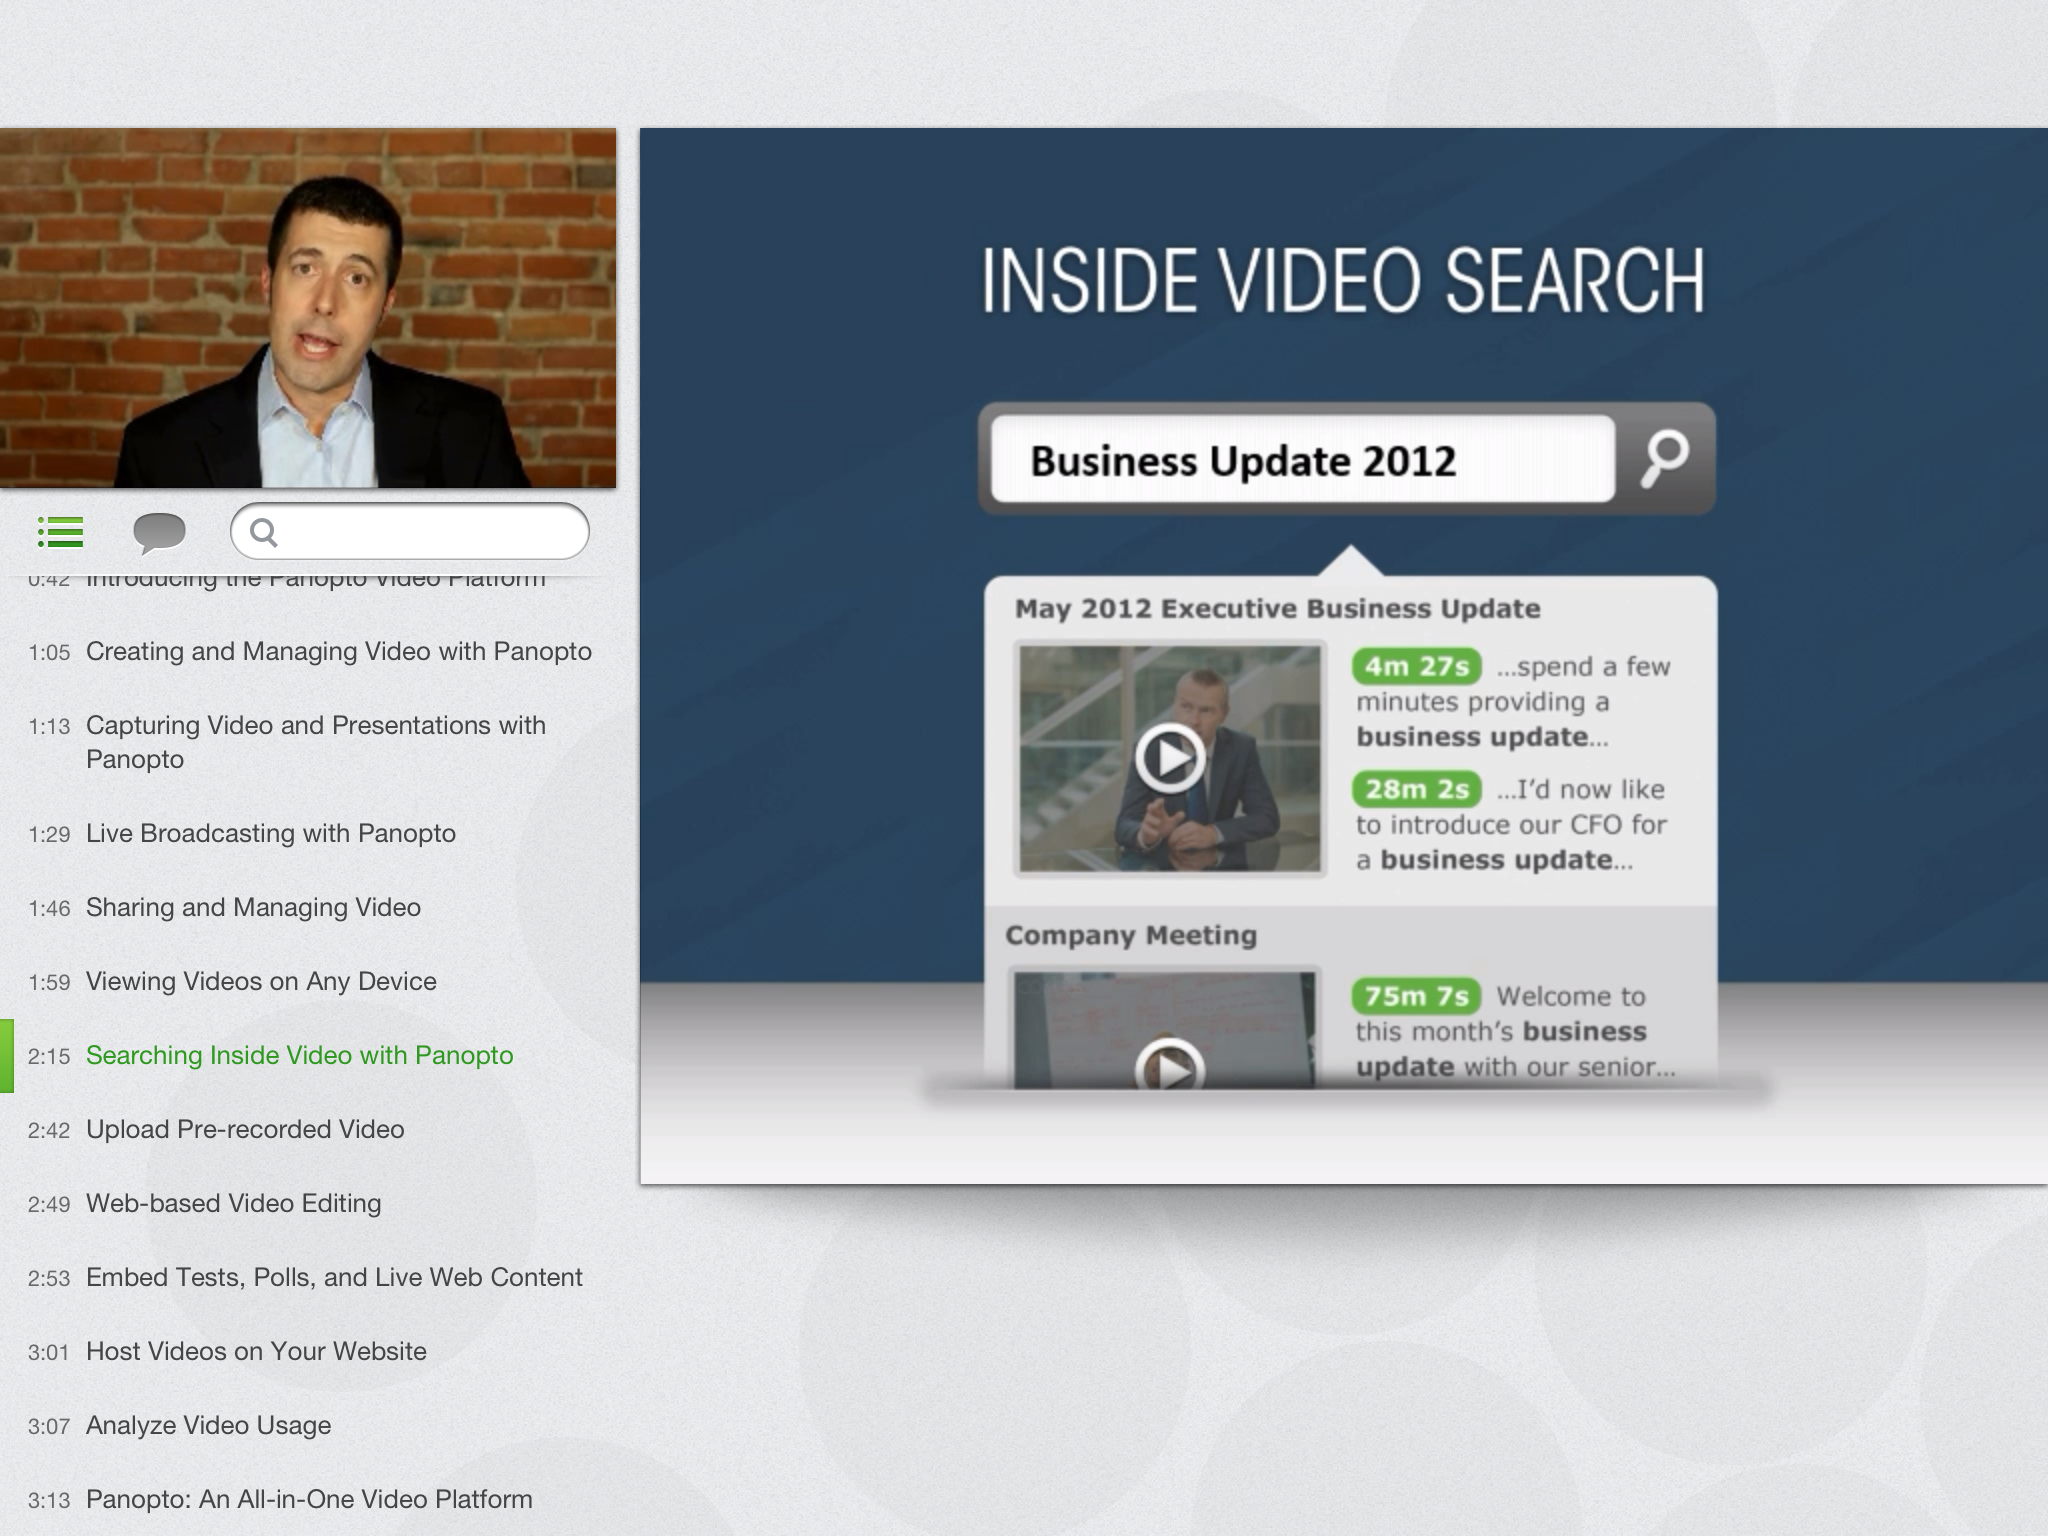 Panopto Online Video Platform - iPadApp-16Aug2013